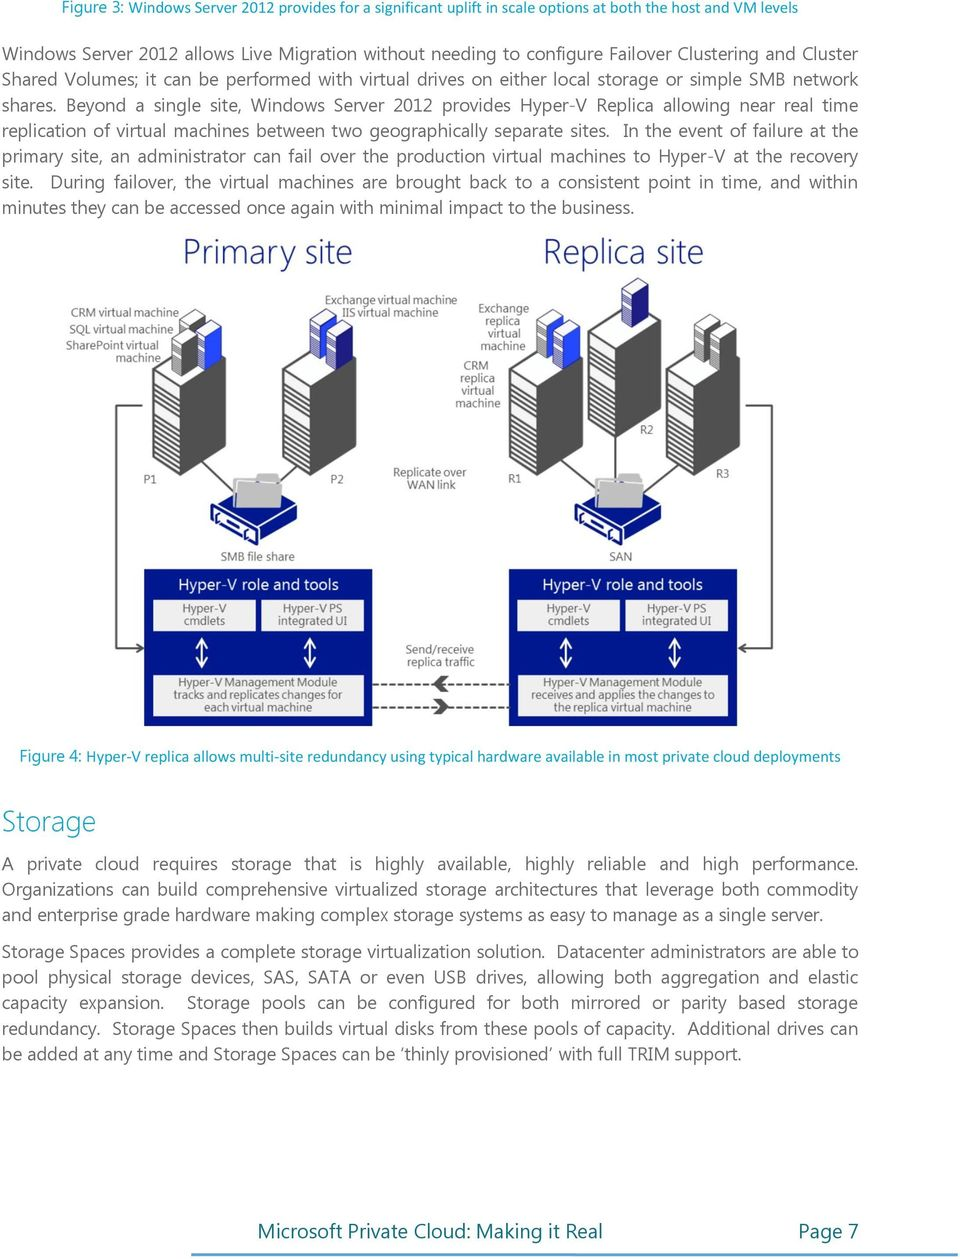 Beyond a single site, Windows Server 2012 provides Hyper-V Replica allowing near real time replication of virtual machines between two geographically separate sites.